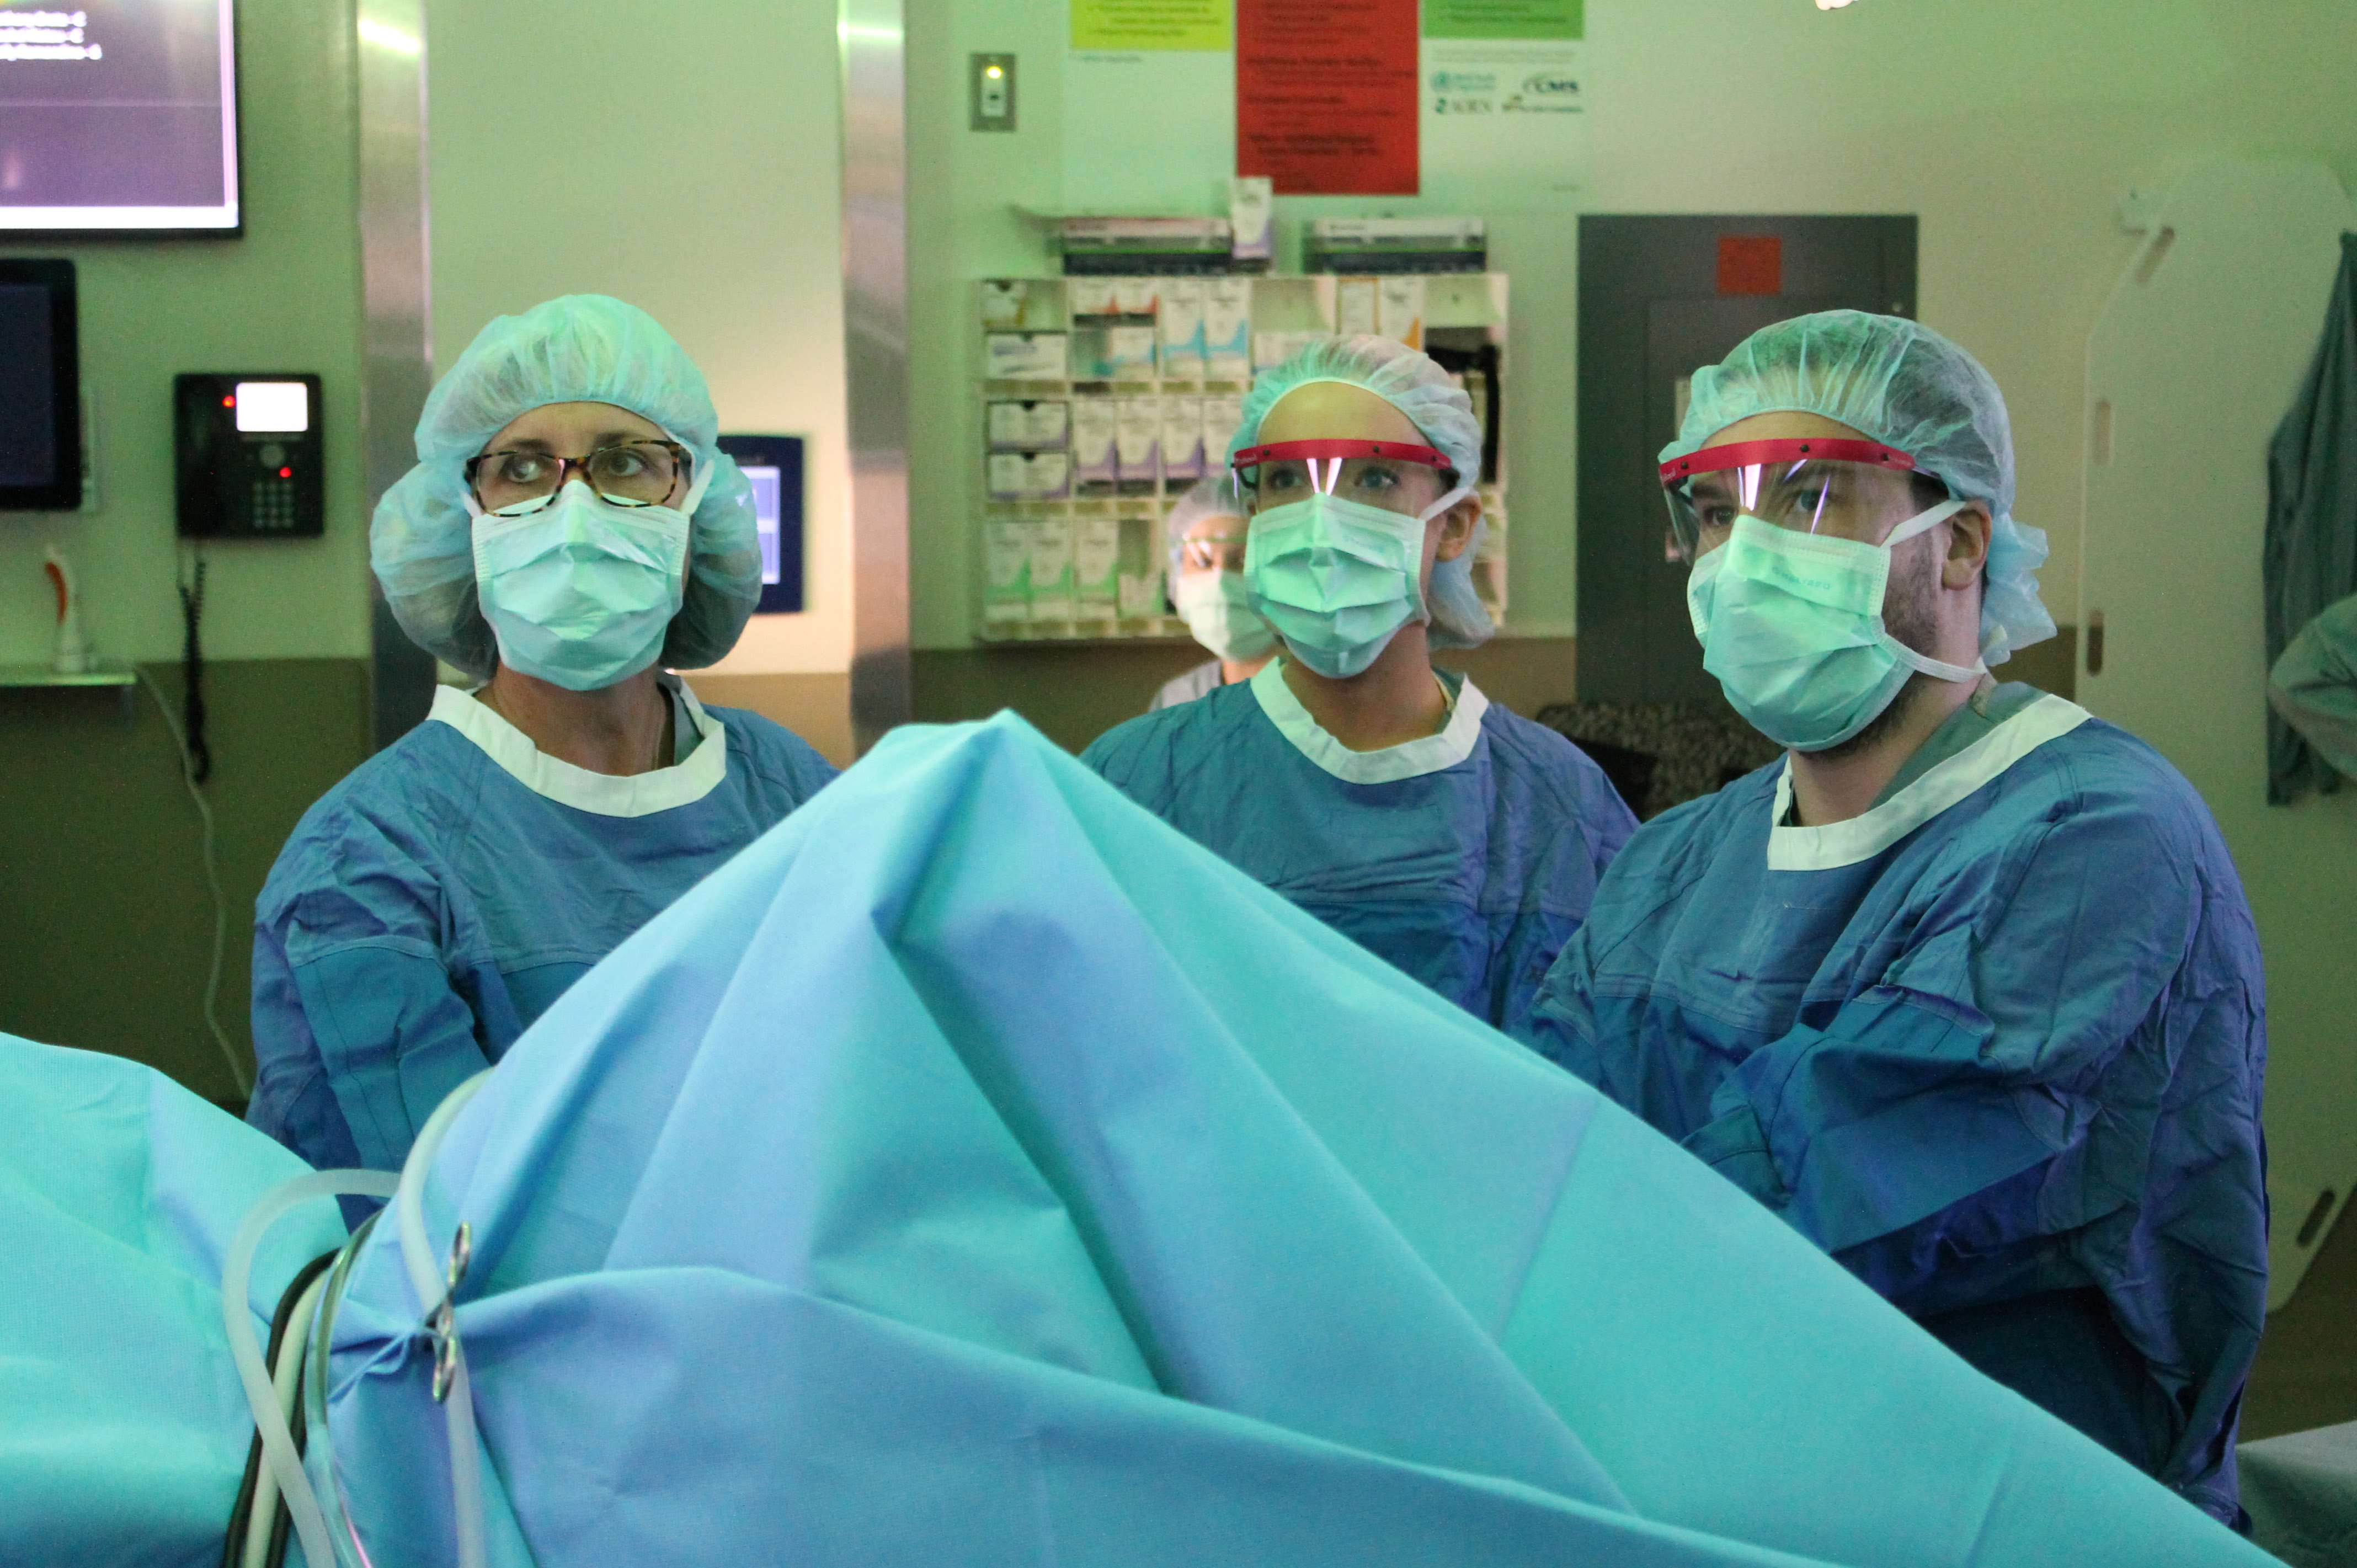 Orthopaedic Surgery Operating Room